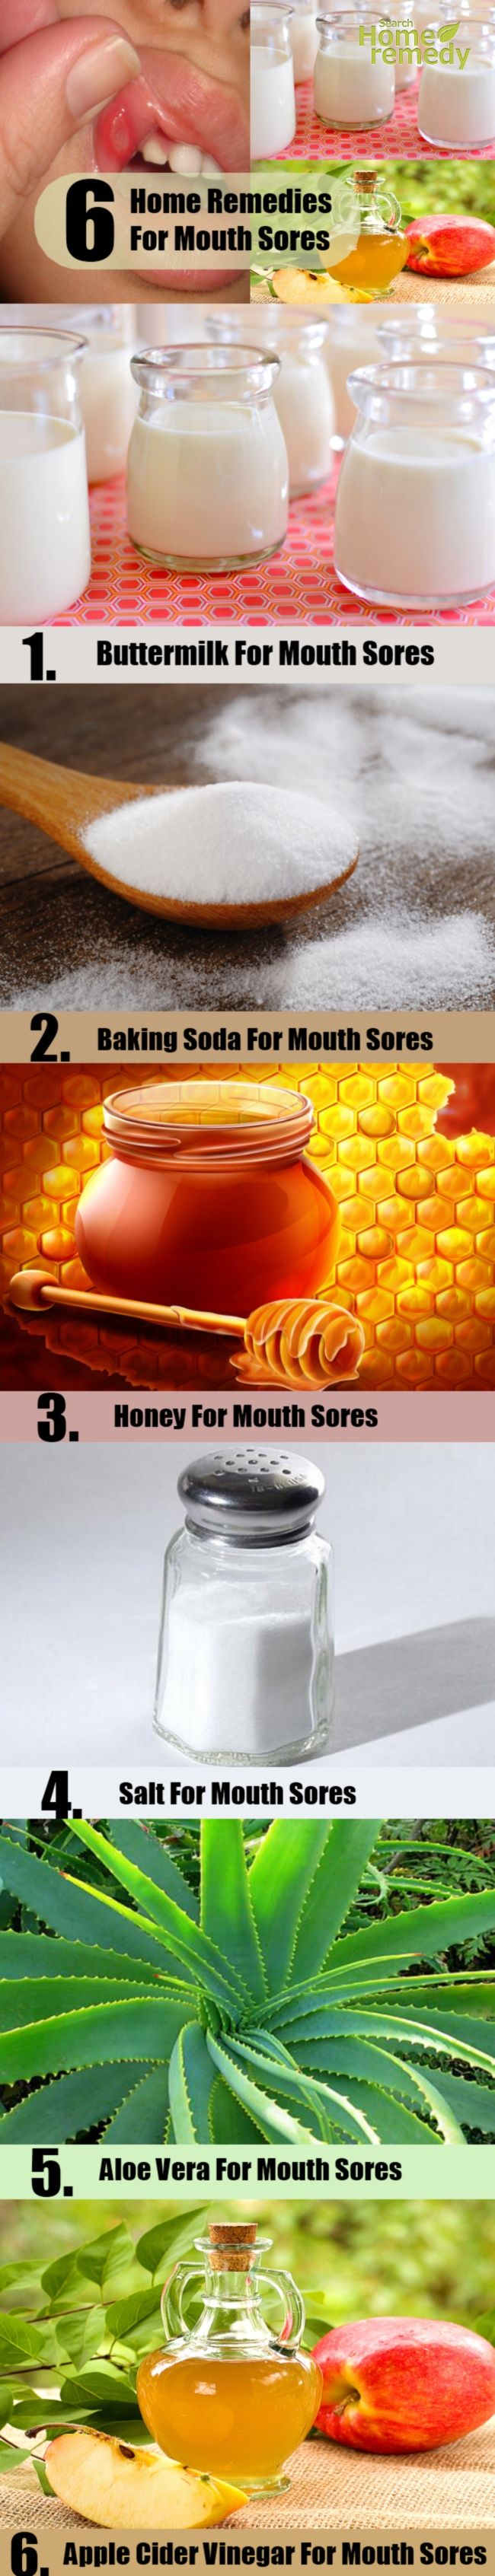 6 Mouth Sores Home Remedies Natural Treatments And Cures | Search Home Remedy